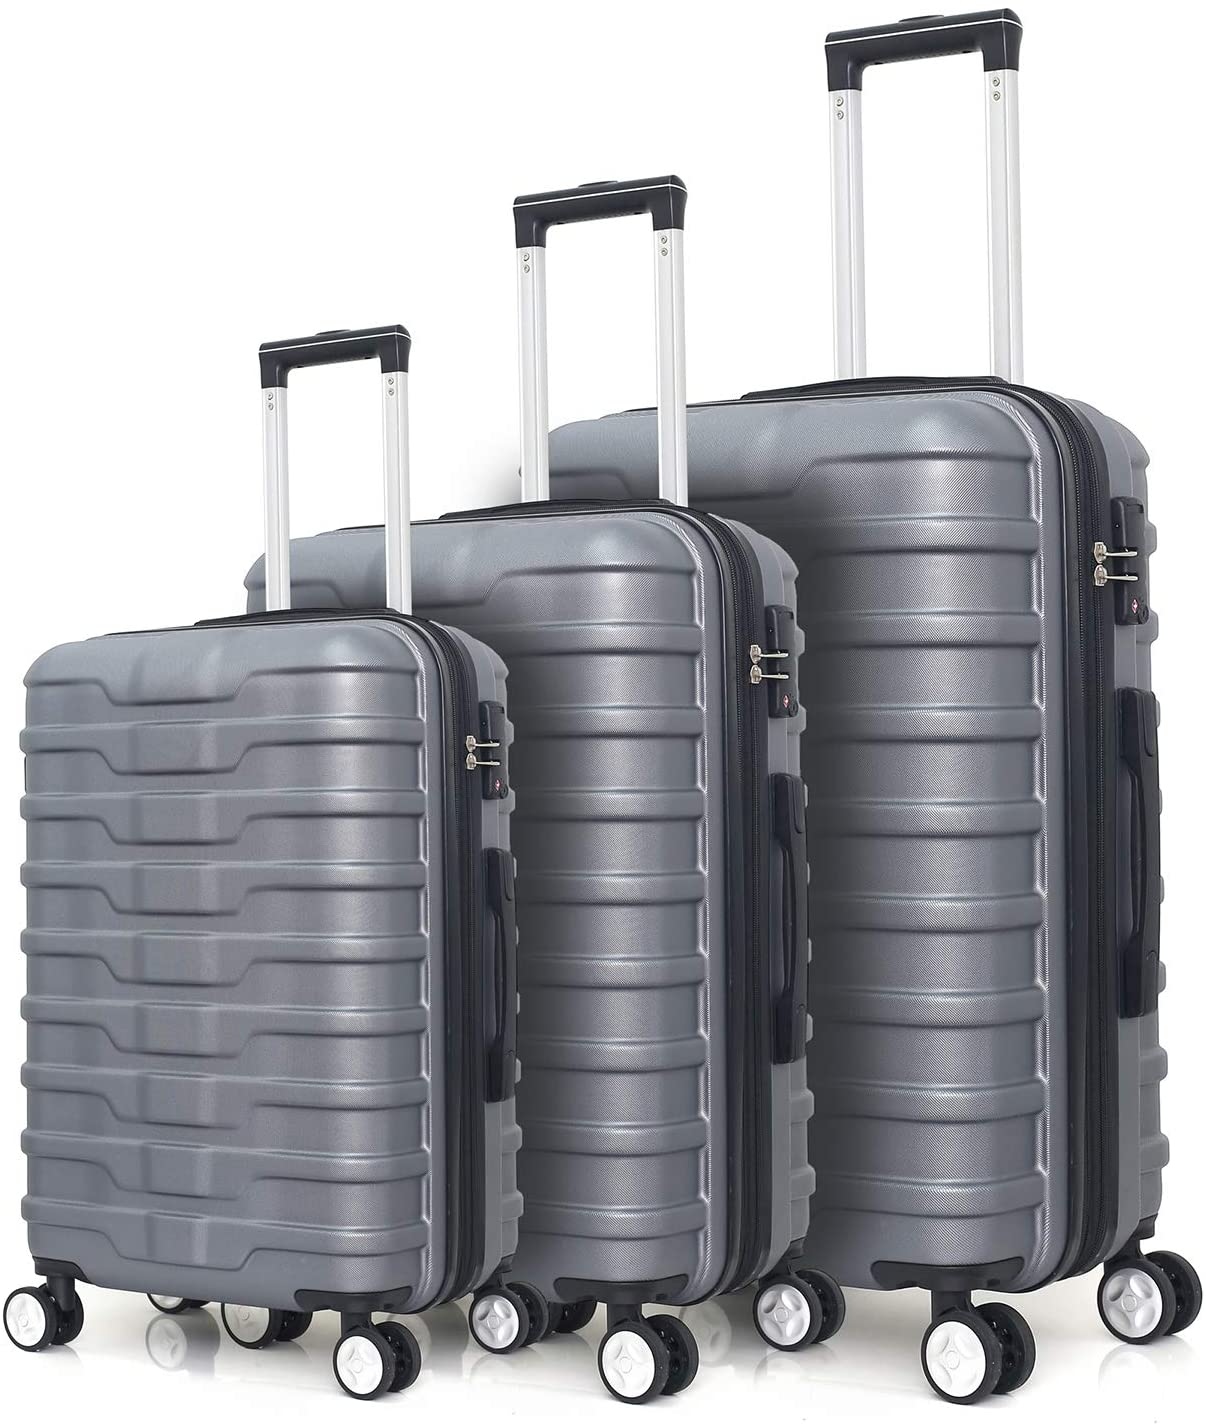 Luggage 3 Piece Set, Rockjame Expandable Hardside Durable ABS Lightweight Spinner Hardshell Suitcase with TSA Accepted Lock (Sliver)